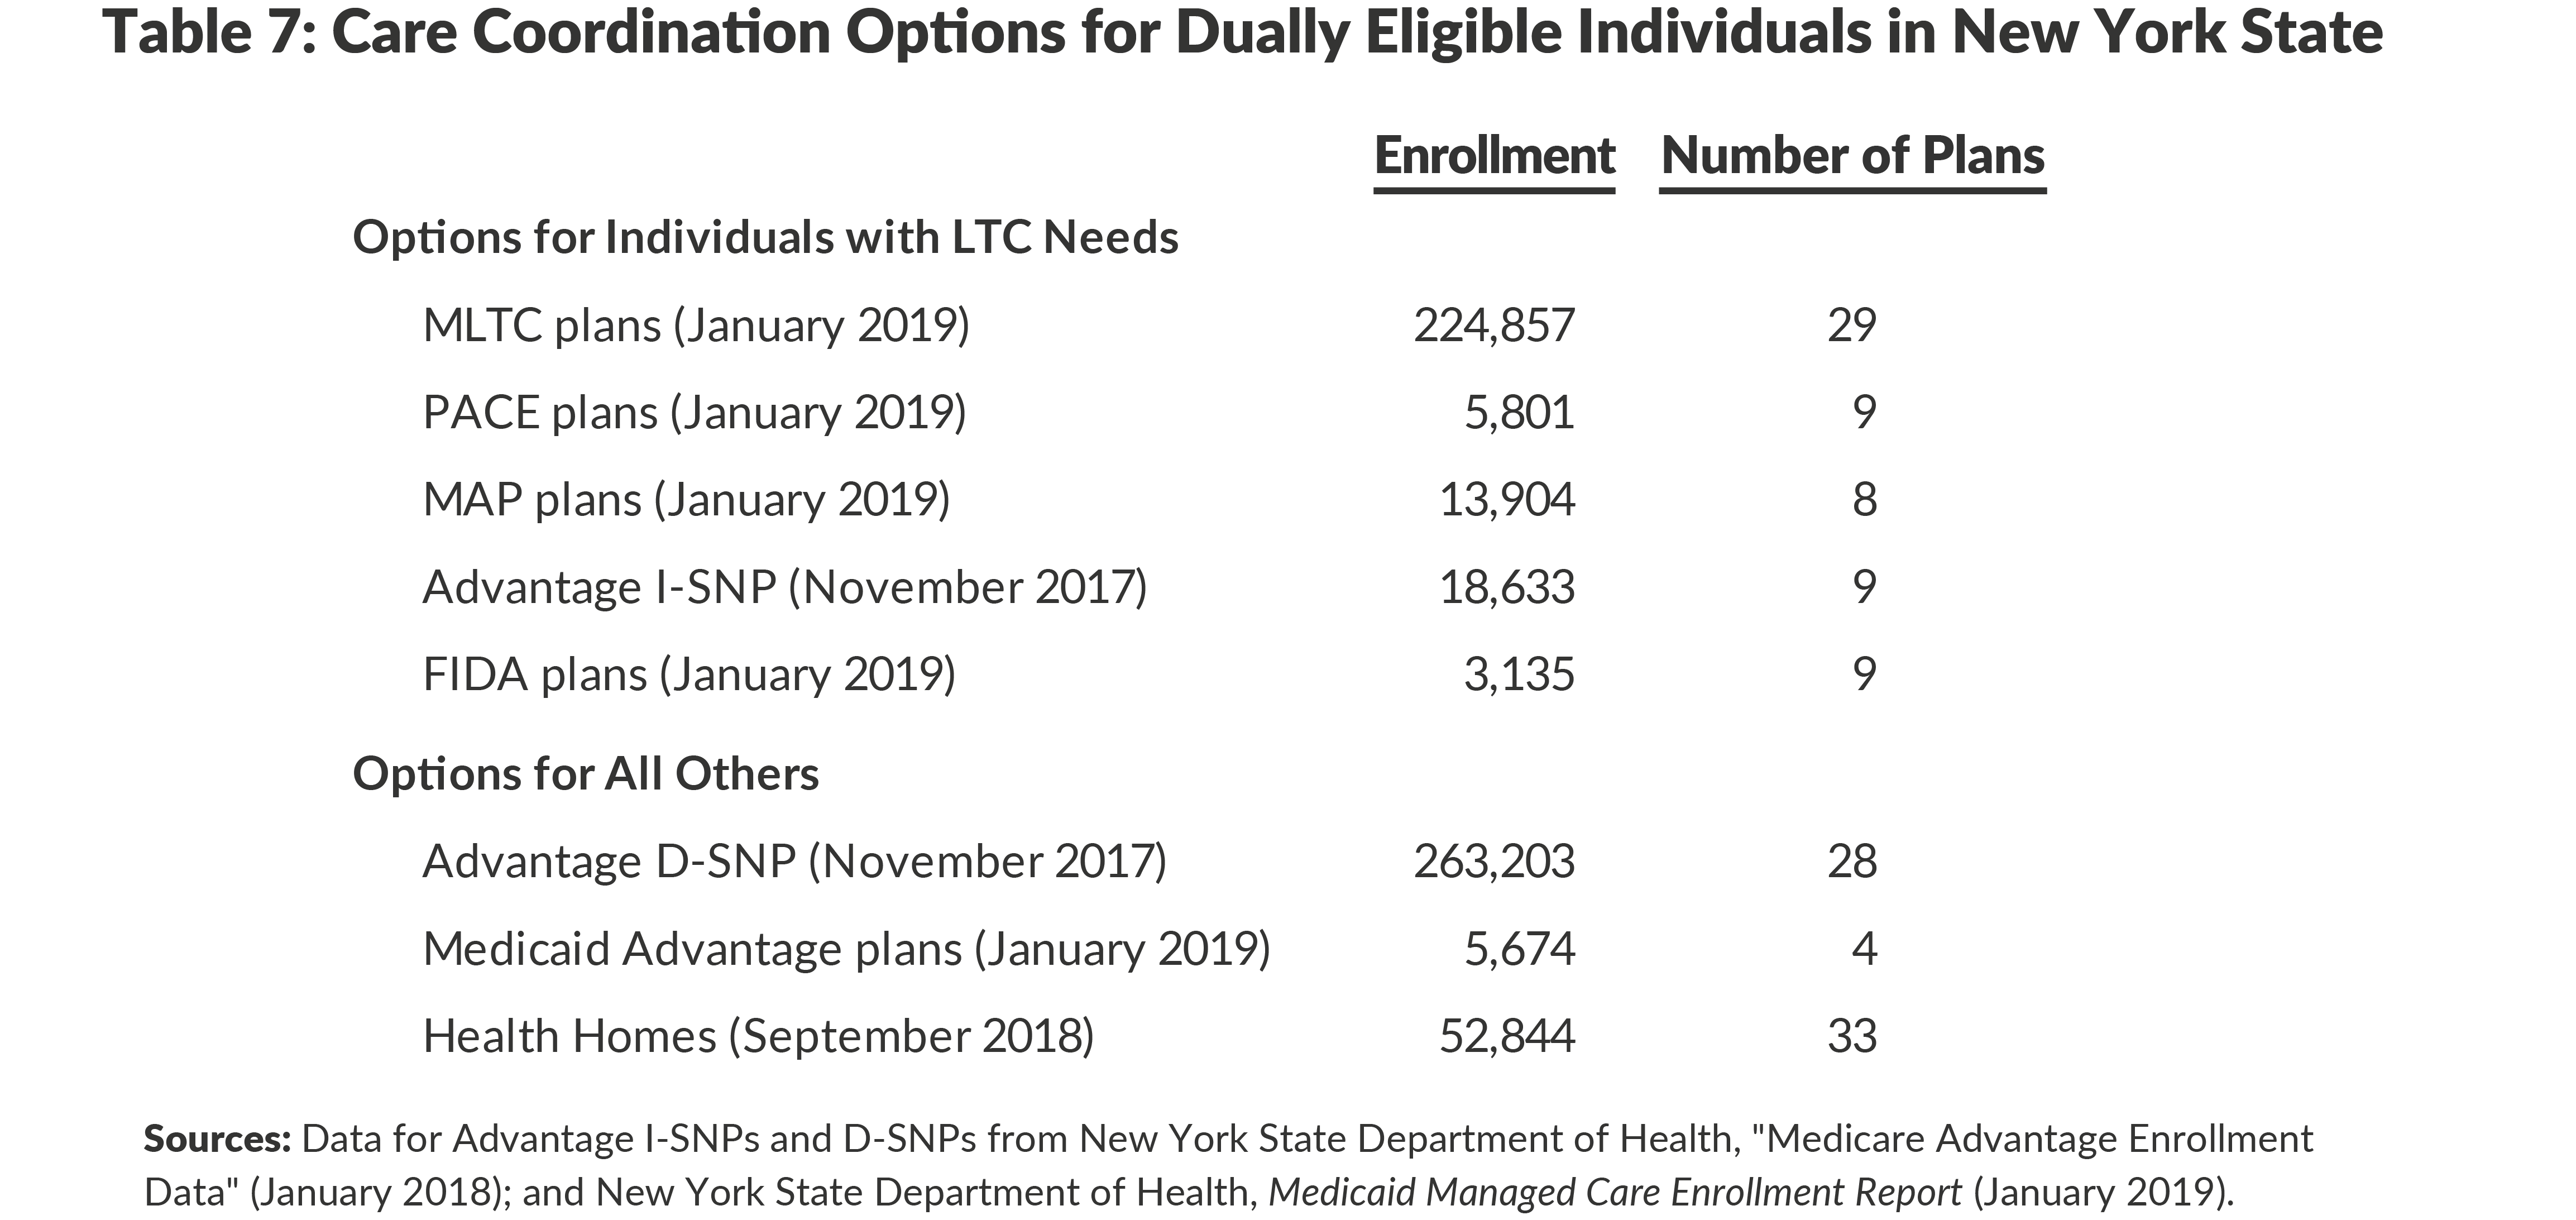 Table 7: Care Coordination Options for Dually Eligible Individuals in New York State